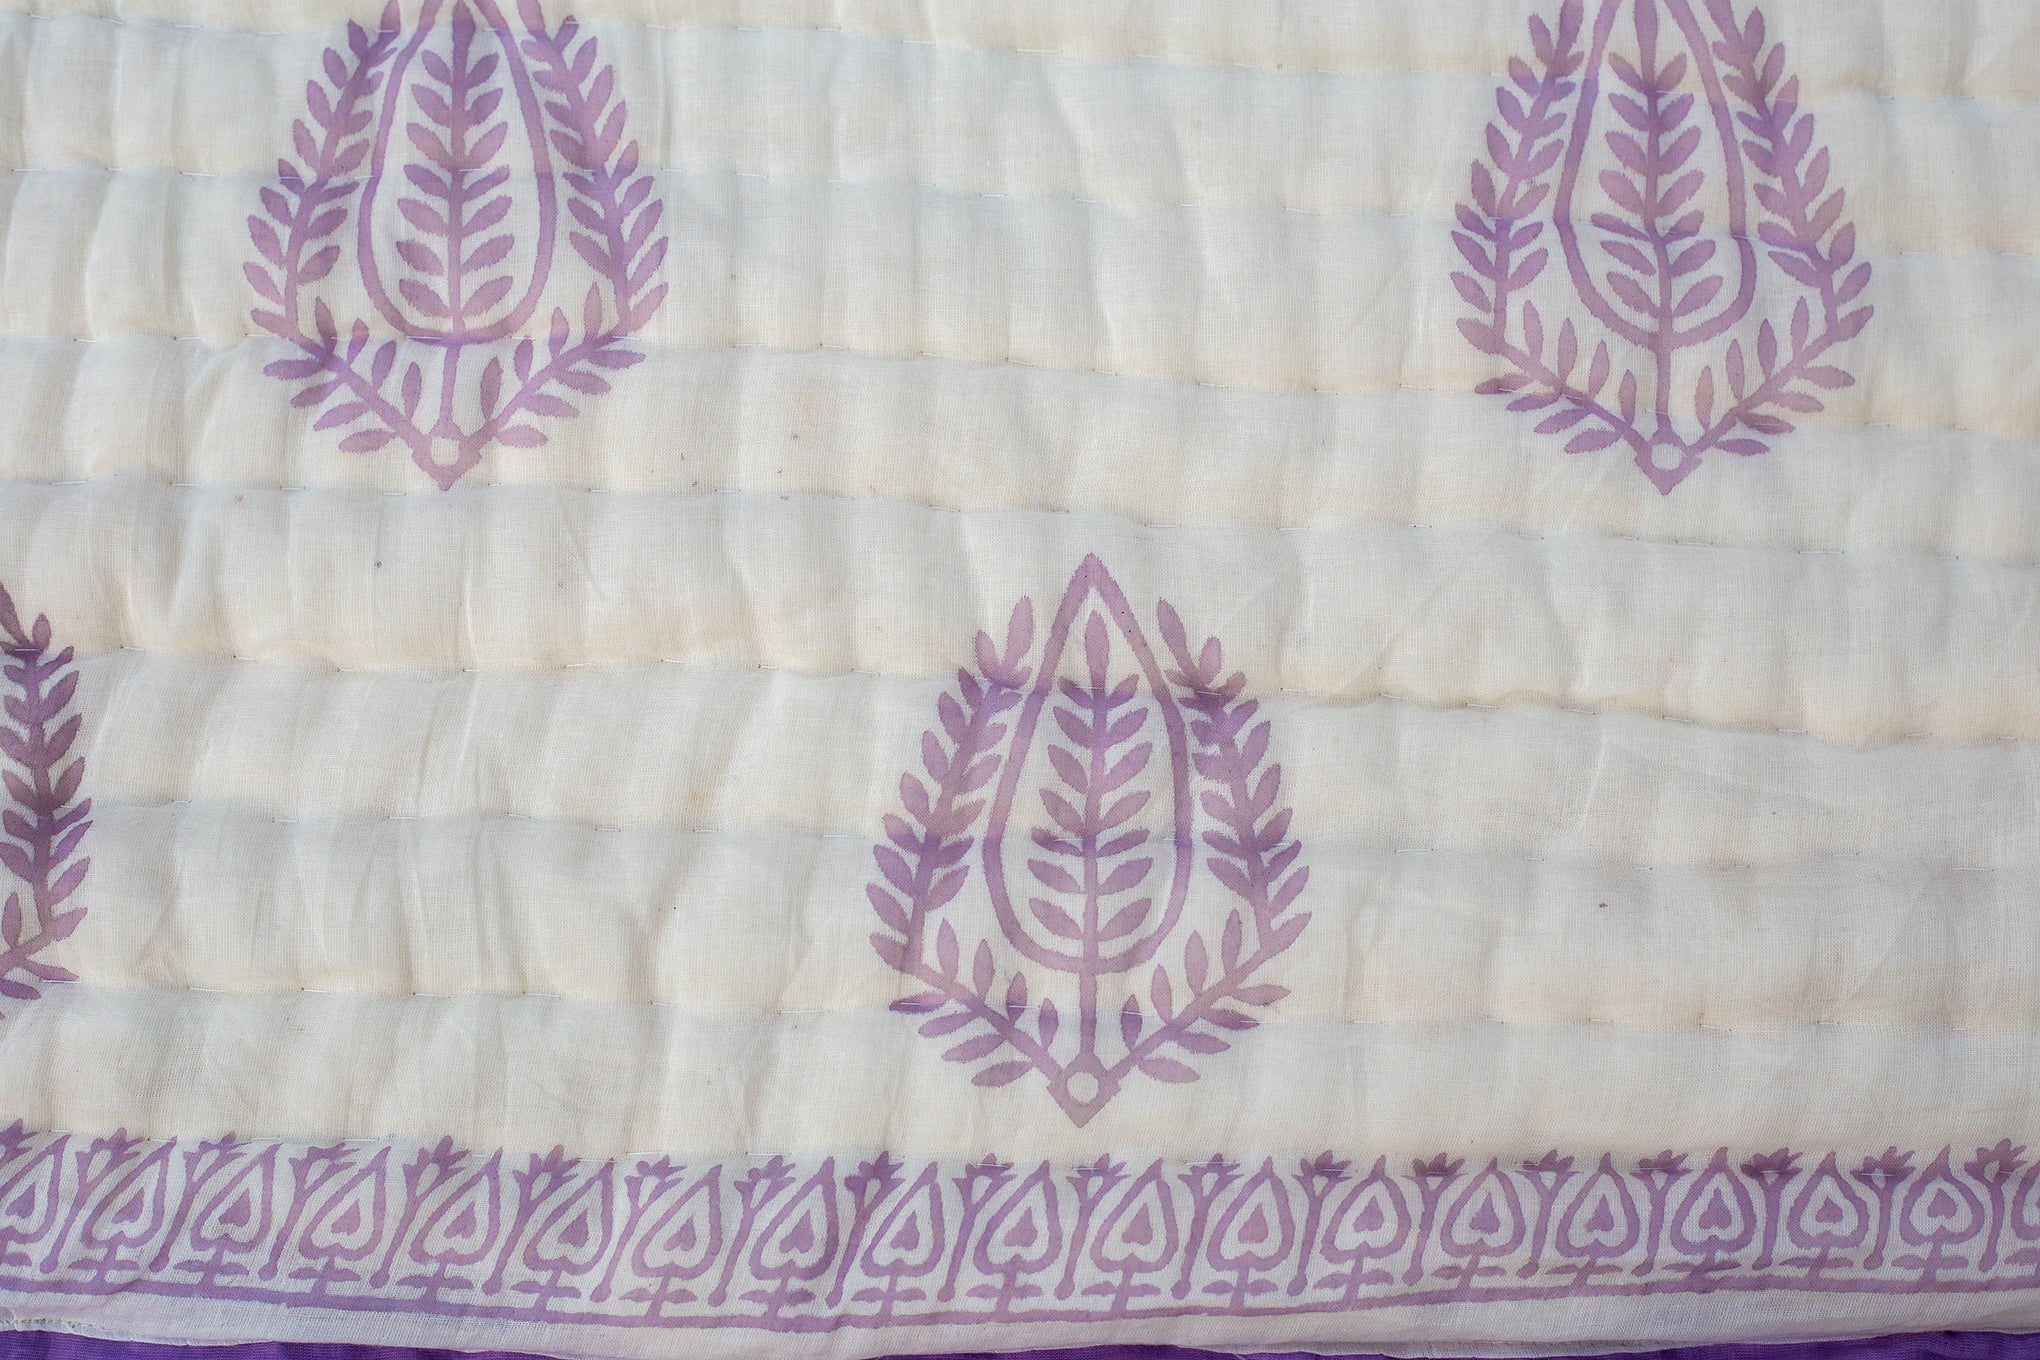 All New Roysha 2021 Queen Quilt Collection, 100 Percent Handmade, Hand Block printed Quilt, Lavender